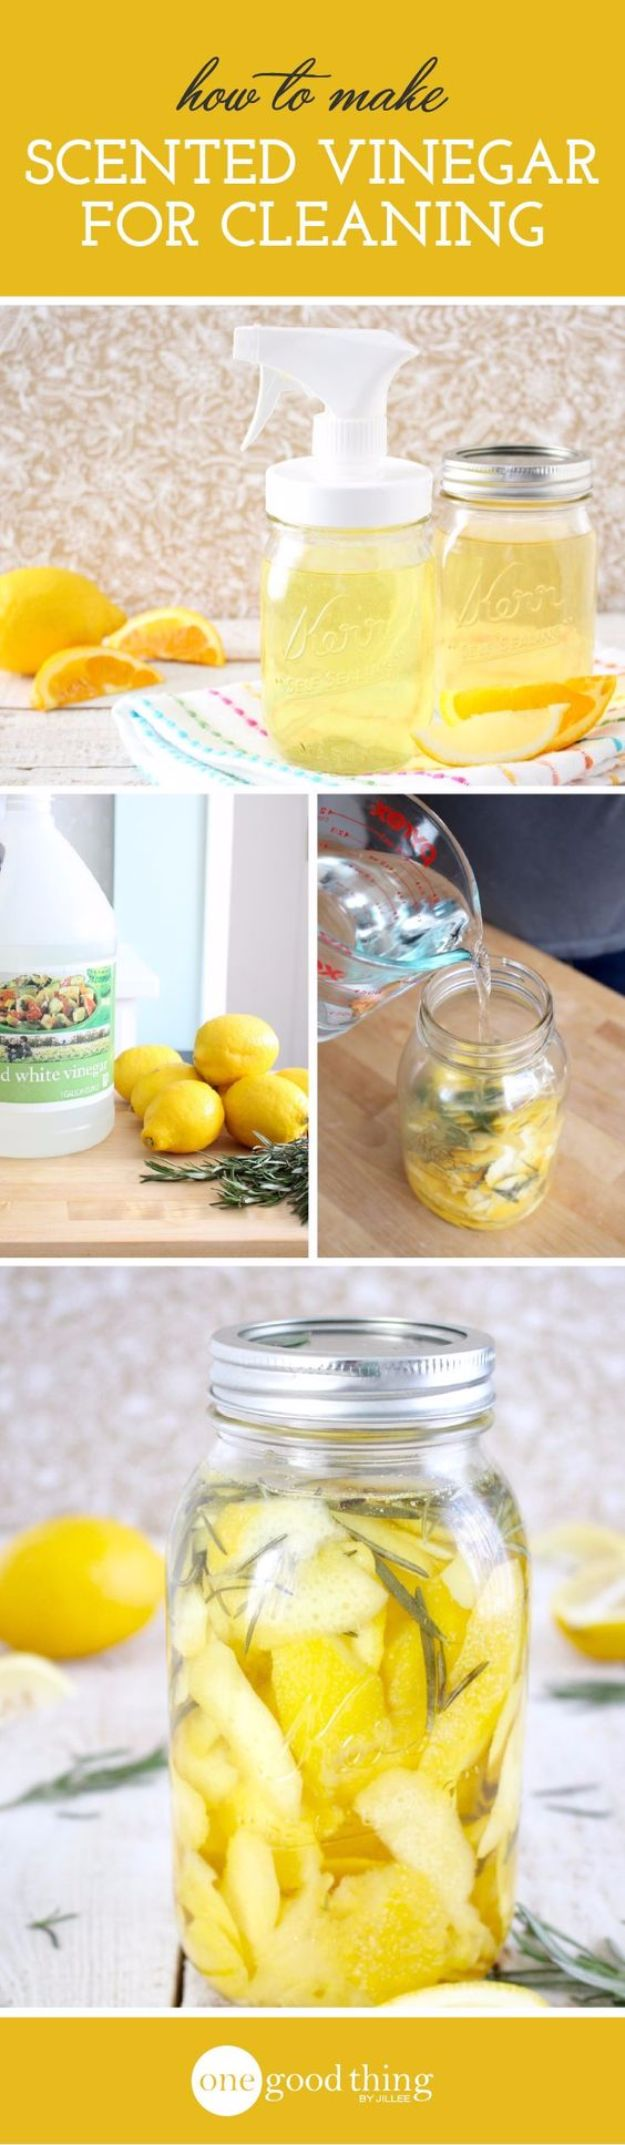 Cleaning Tips and Tricks - Make Your Own Scented Cleaning Vinegar - Best Cleaning Hacks, Recipes and Tutorials - Daily Ways to Clean For Kitchen, For Couches, Bathroom, Bedroom, Laundry, Floors, Furniture, Windows, Cleaners and More for Cleaning Your Home- Quick Ideas for Lazy People - Cool Cleaning Hack Tutorial